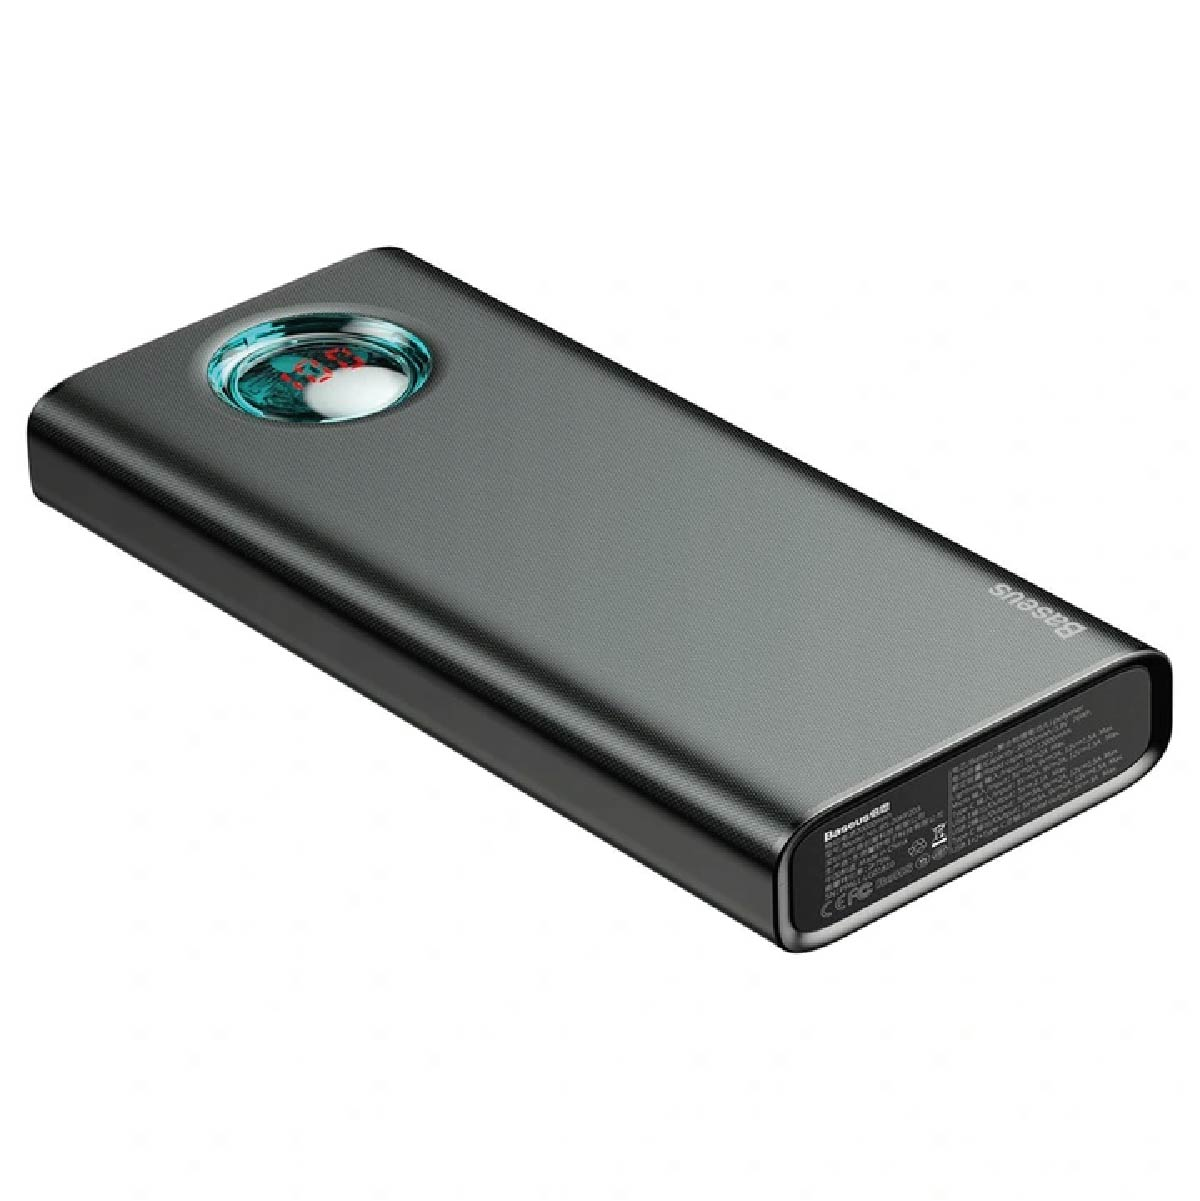 Carregador Portátil Baseus Ambilight Powerbank 20000mAh QC 3.0 PD USBC